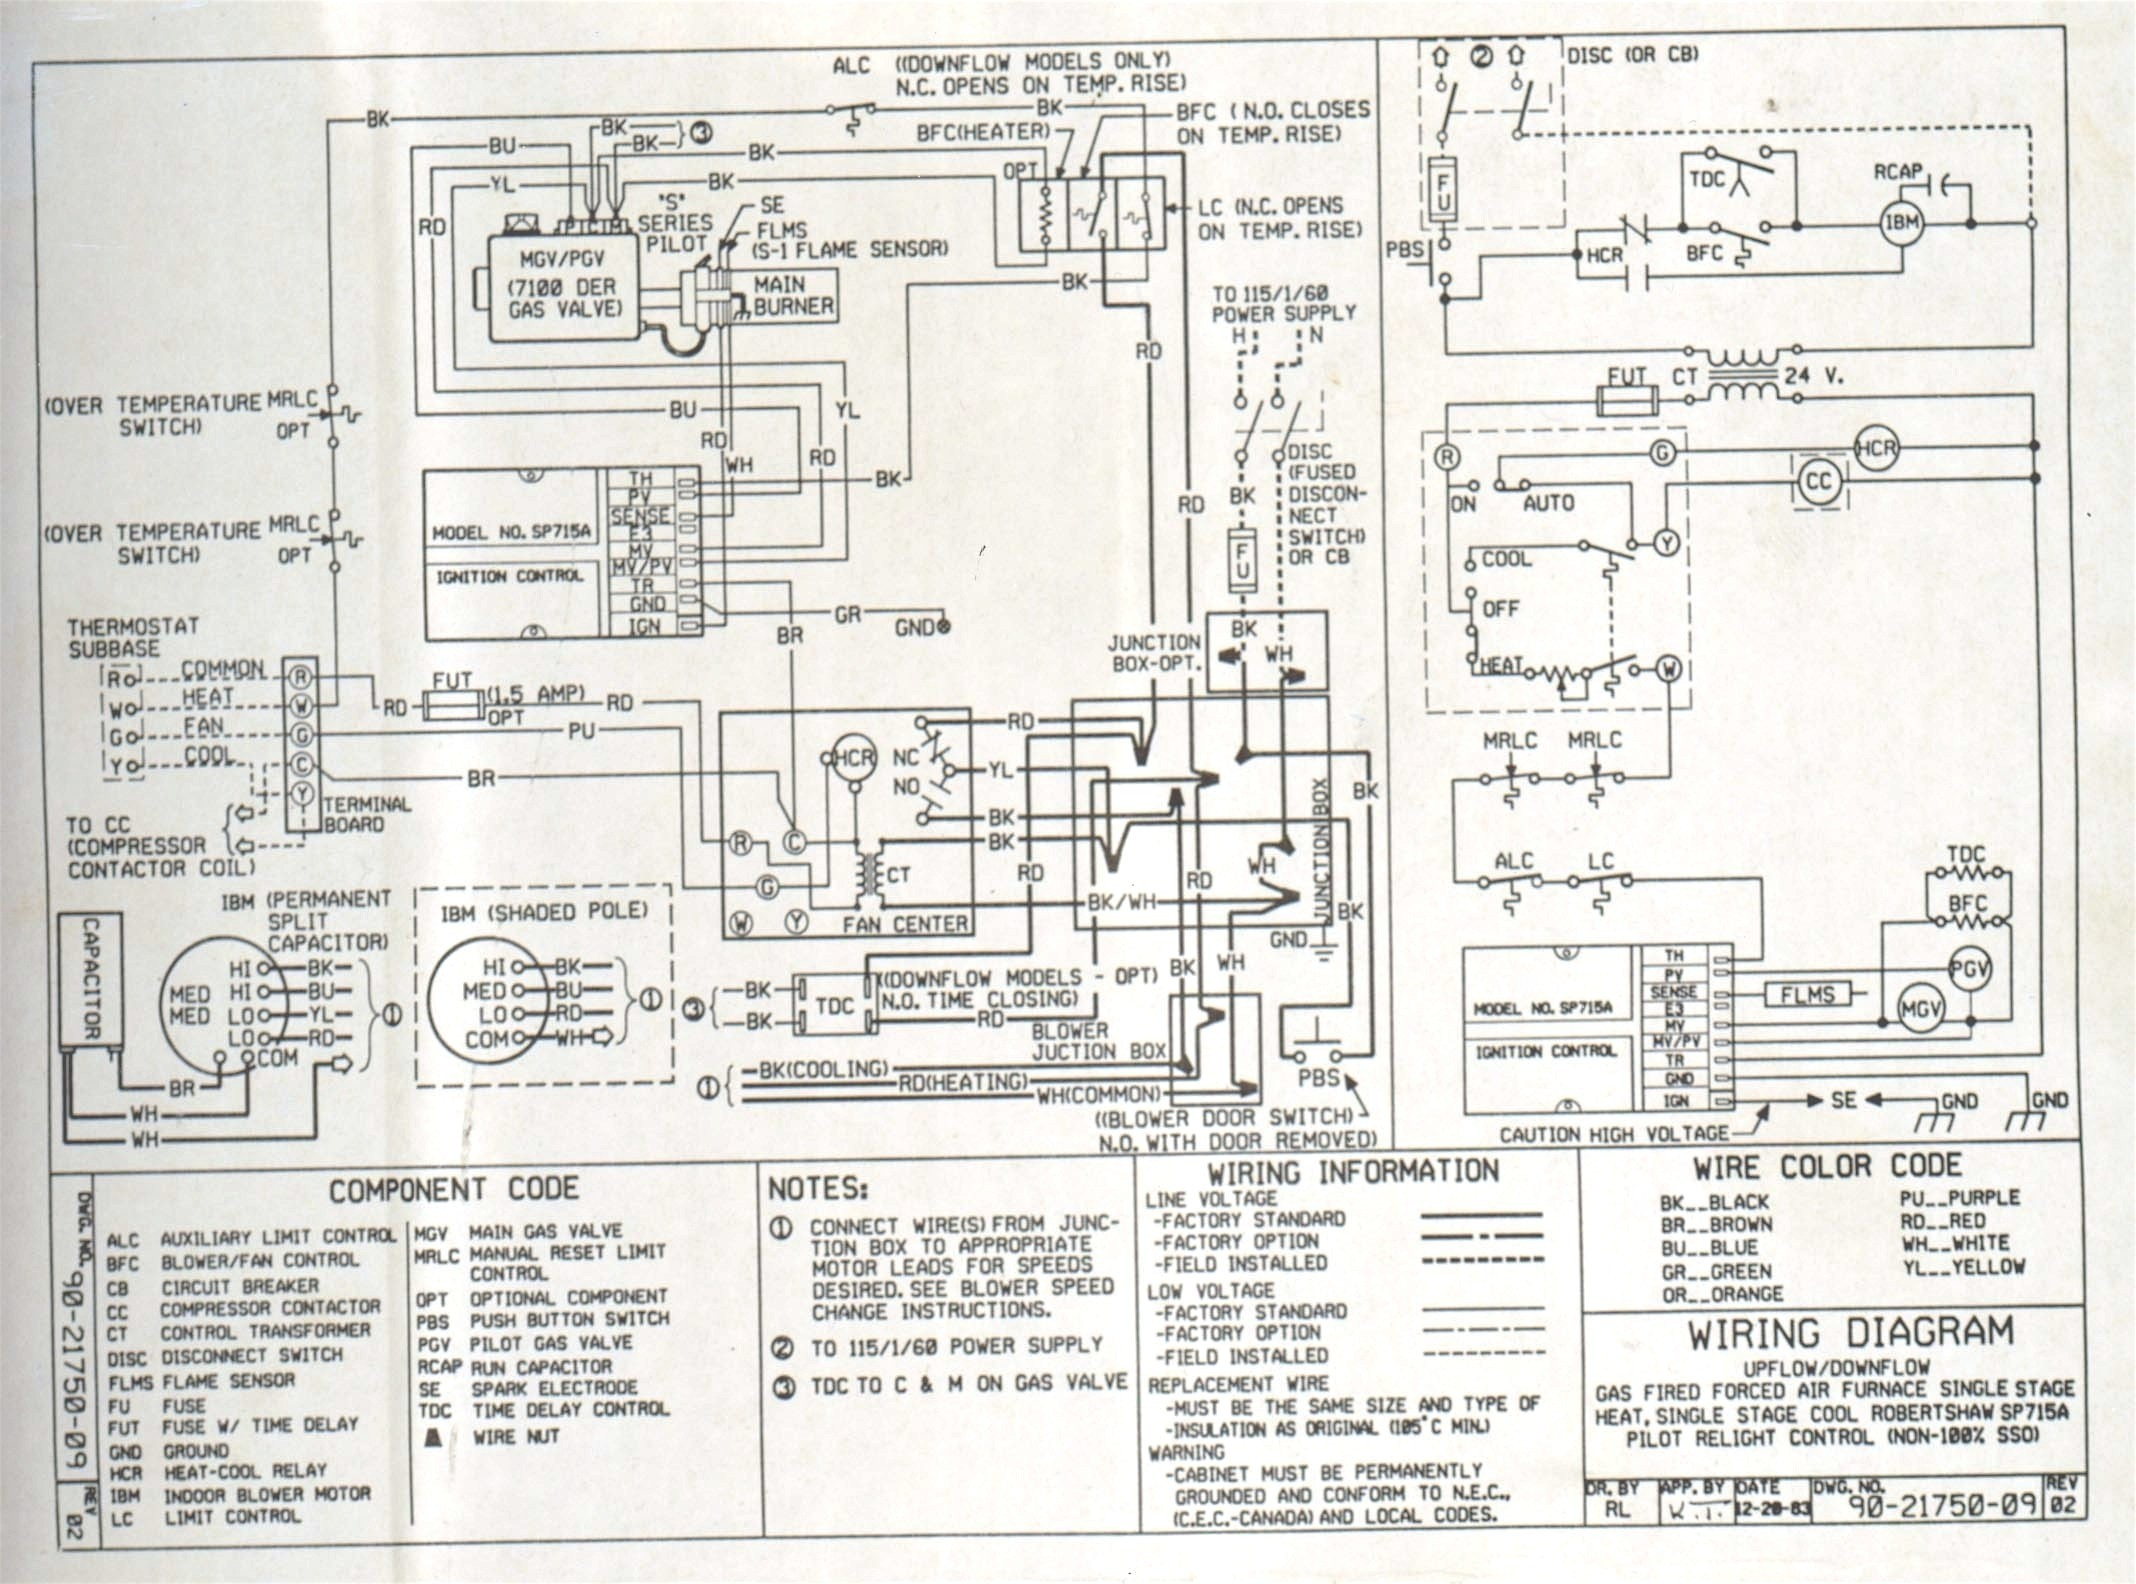 Westinghouse Electric Furnace Wiring Diagram Fresh Intertherm Electric Furnace Wiring Diagram Wiring